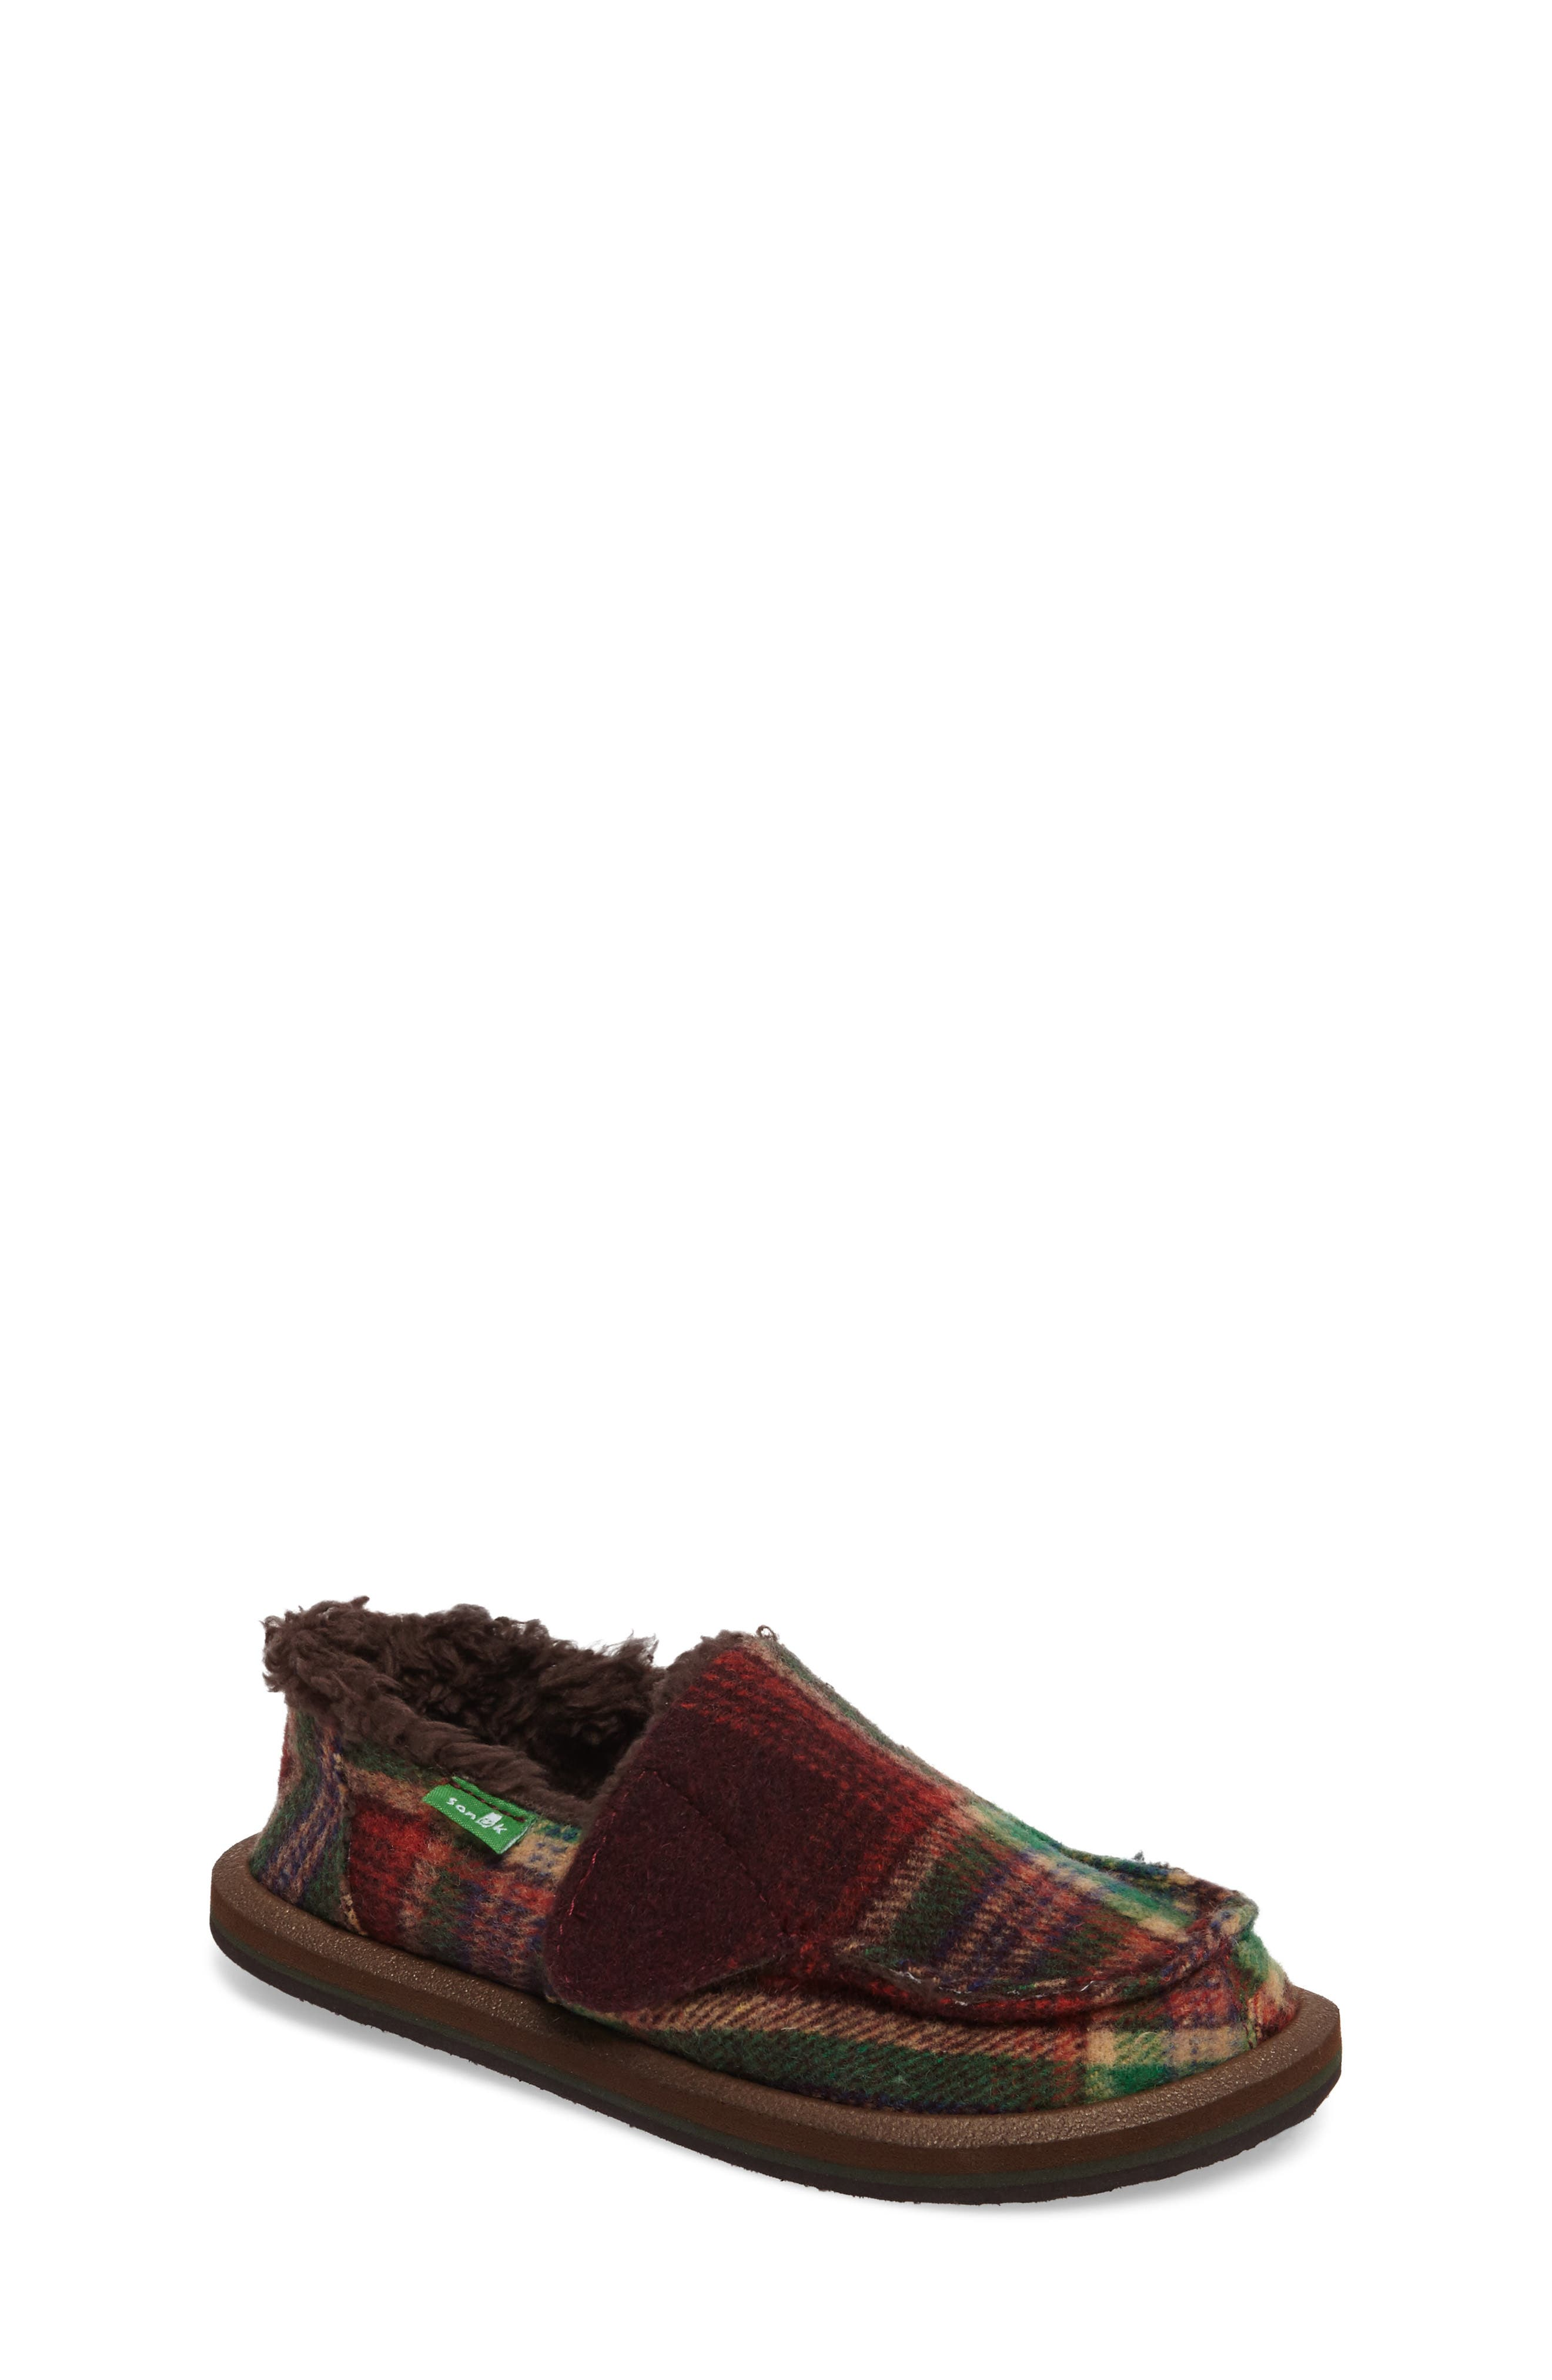 Alternate Image 1 Selected - Sanuk Vagabond Plaid Chill Faux Fur Slip-On (Toddler, Little Kid & Big Kid)